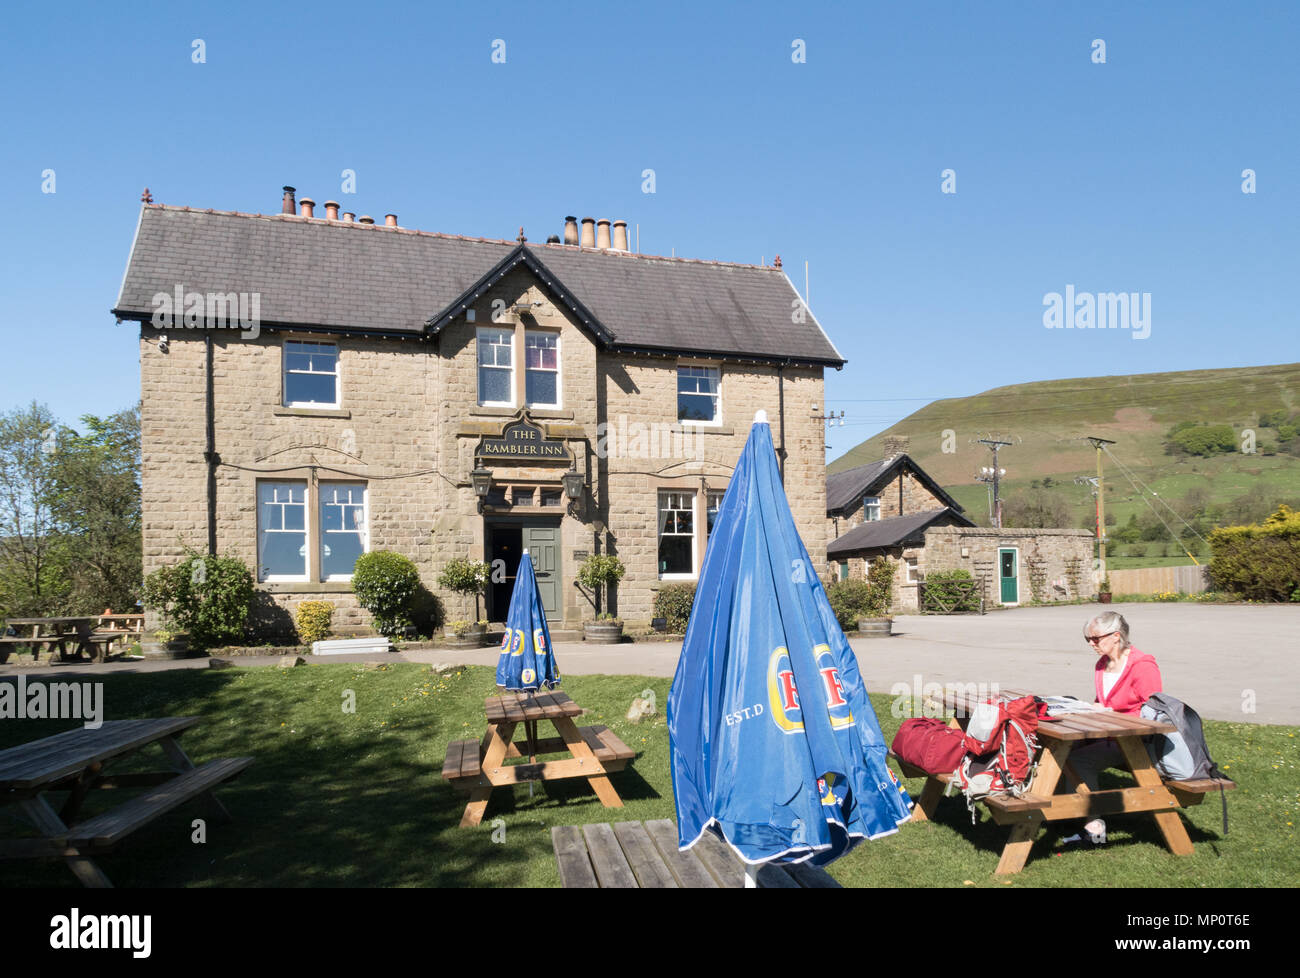 The Rambler Inn in Edale village in the Peak District - Stock Image